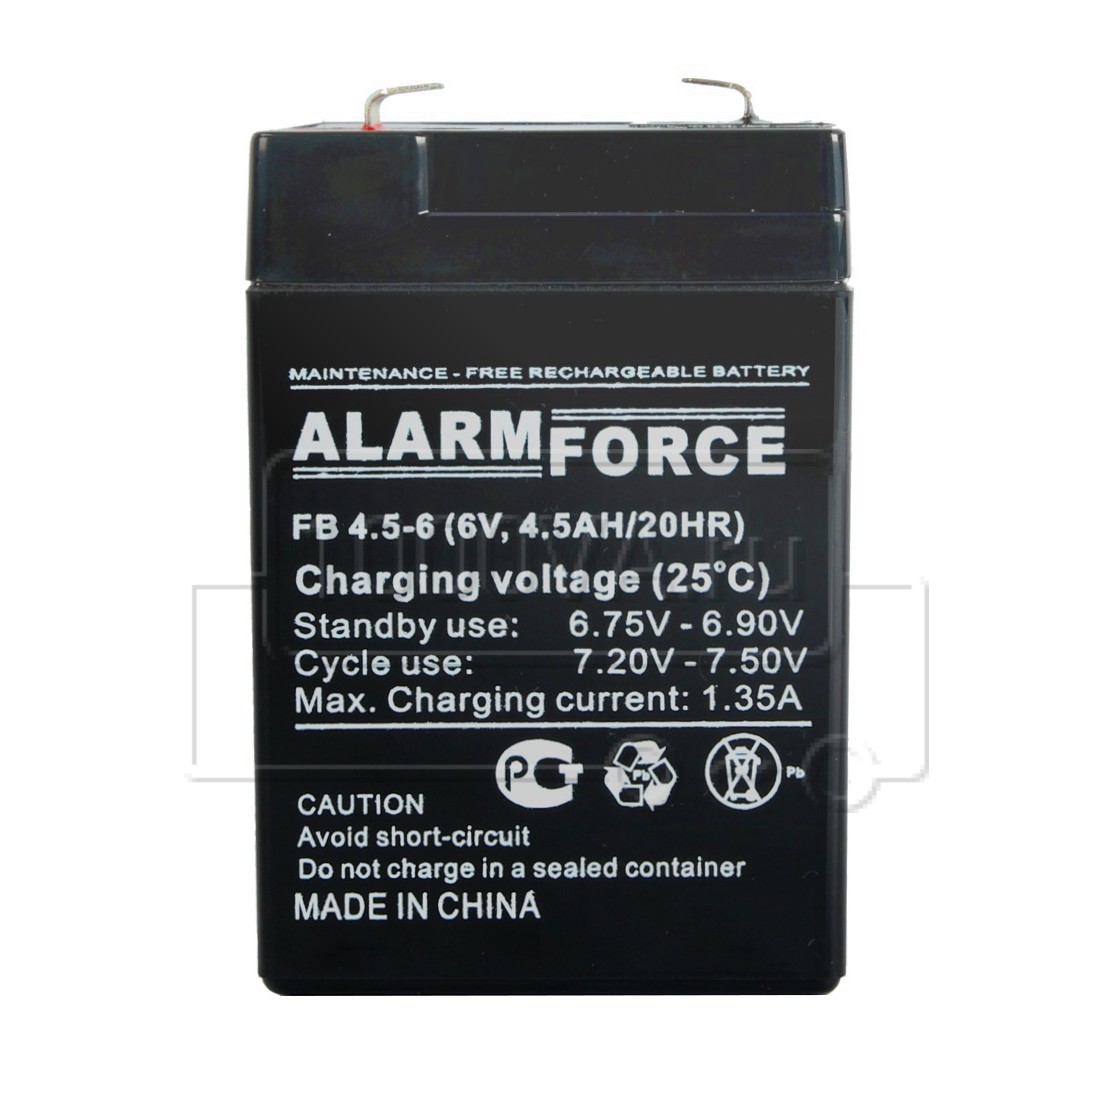 ALARM FORCE FB 4,5-6